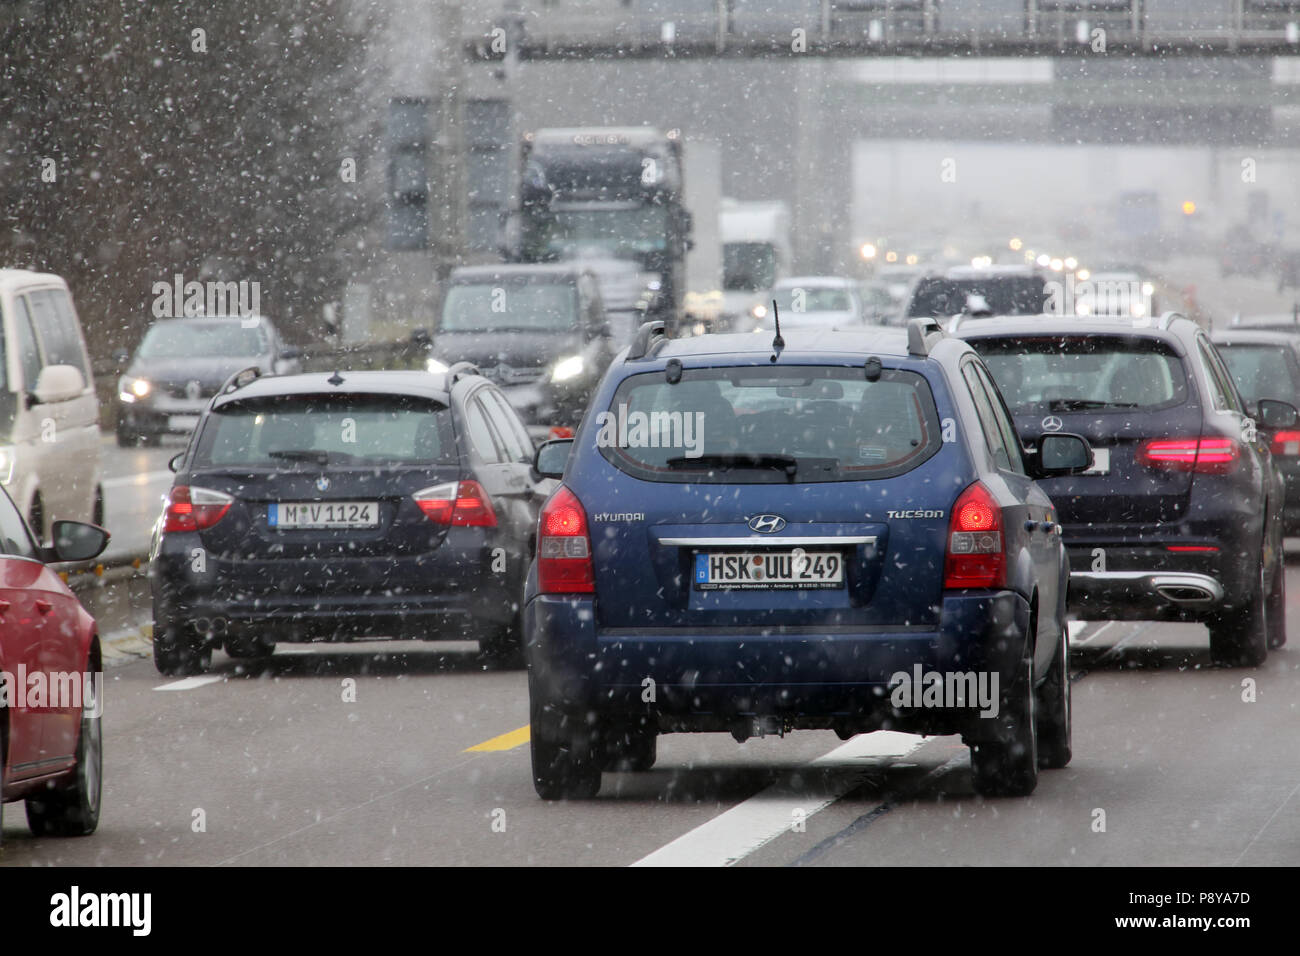 Traffic Accident Germany Stock Photos & Traffic Accident Germany